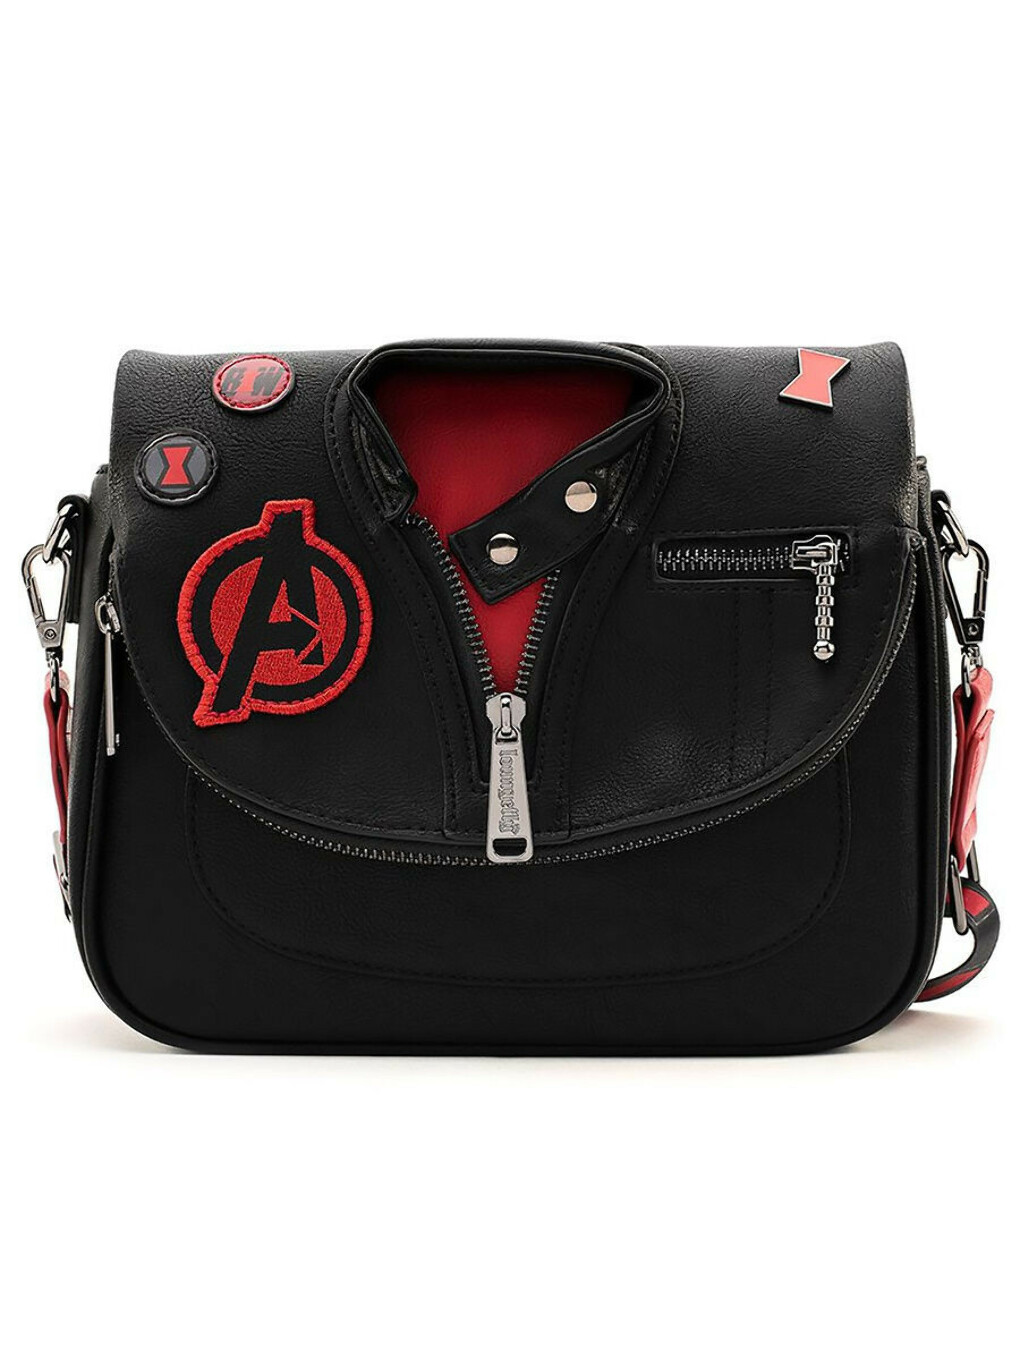 Сумка Funko LF: Marvel: Black Widow Mini Backpack Jacket Crossbody MVTB0095, Funko